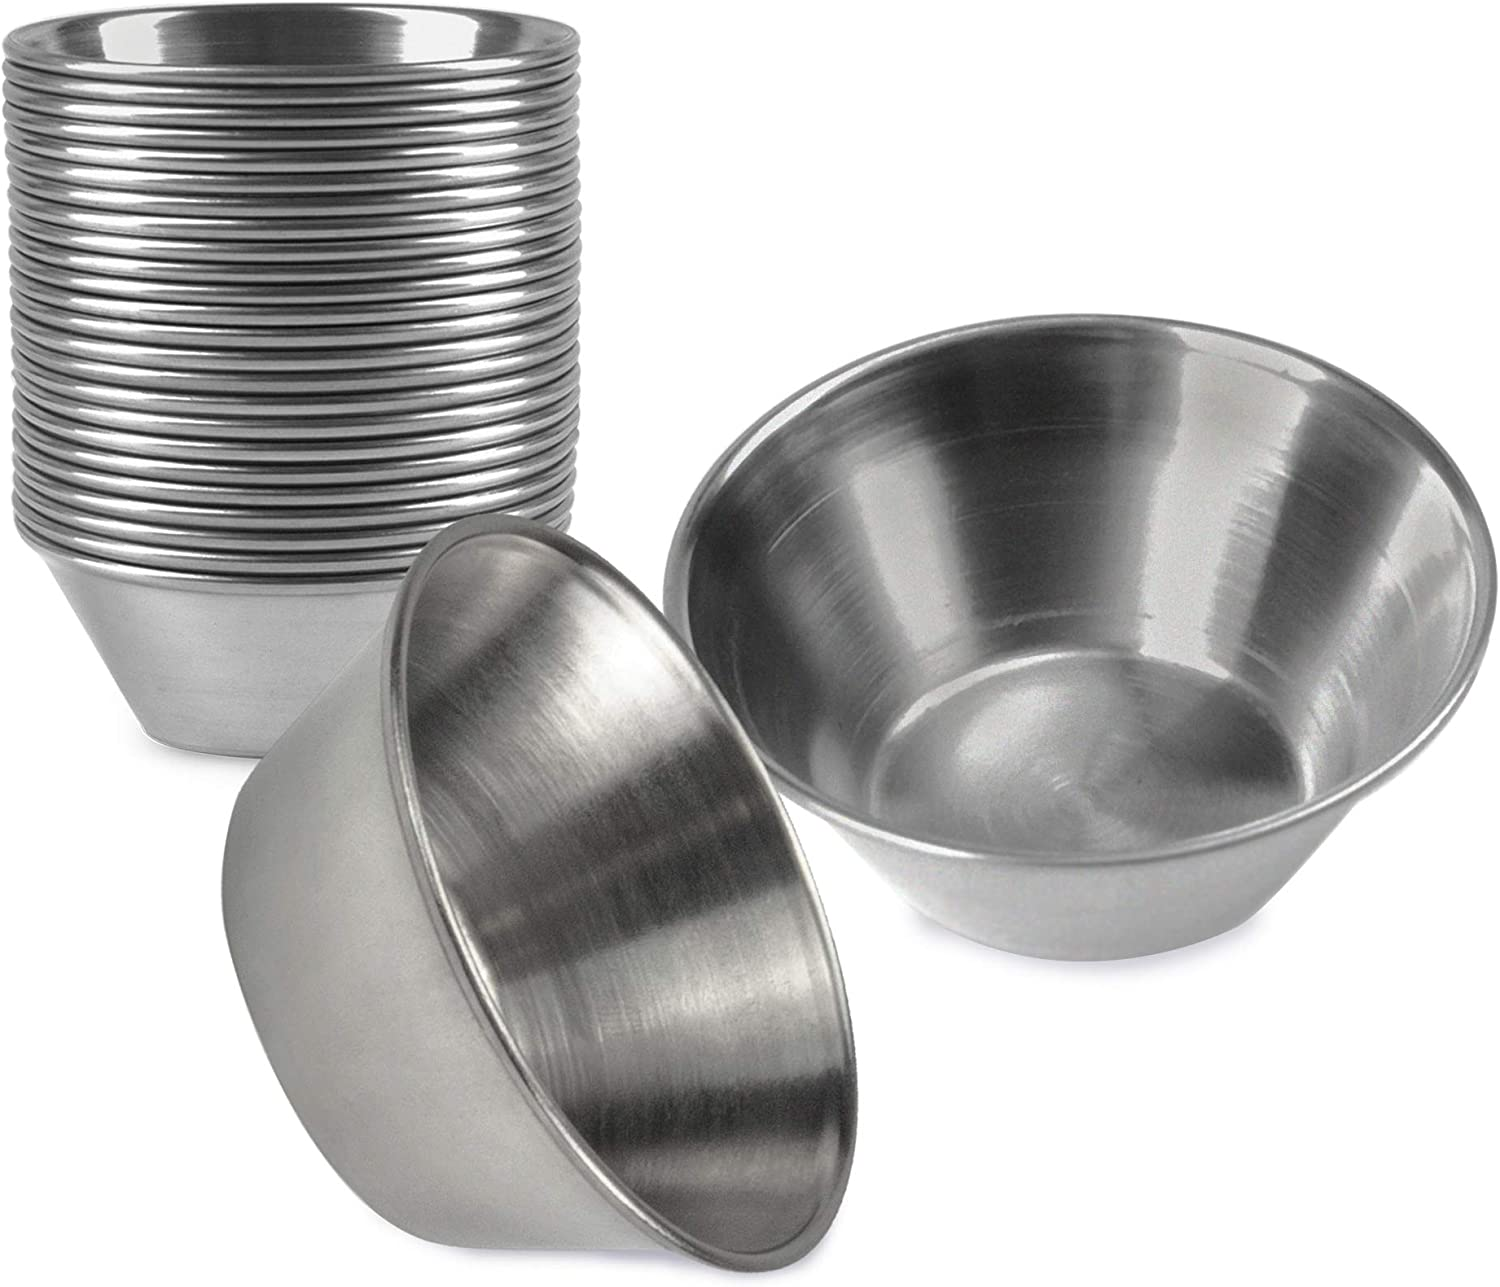 Copper-Plated Stainless Steel Sauce Cups- Portion Cups 12 pack, 1.5 oz Dipping Cups Ramekins